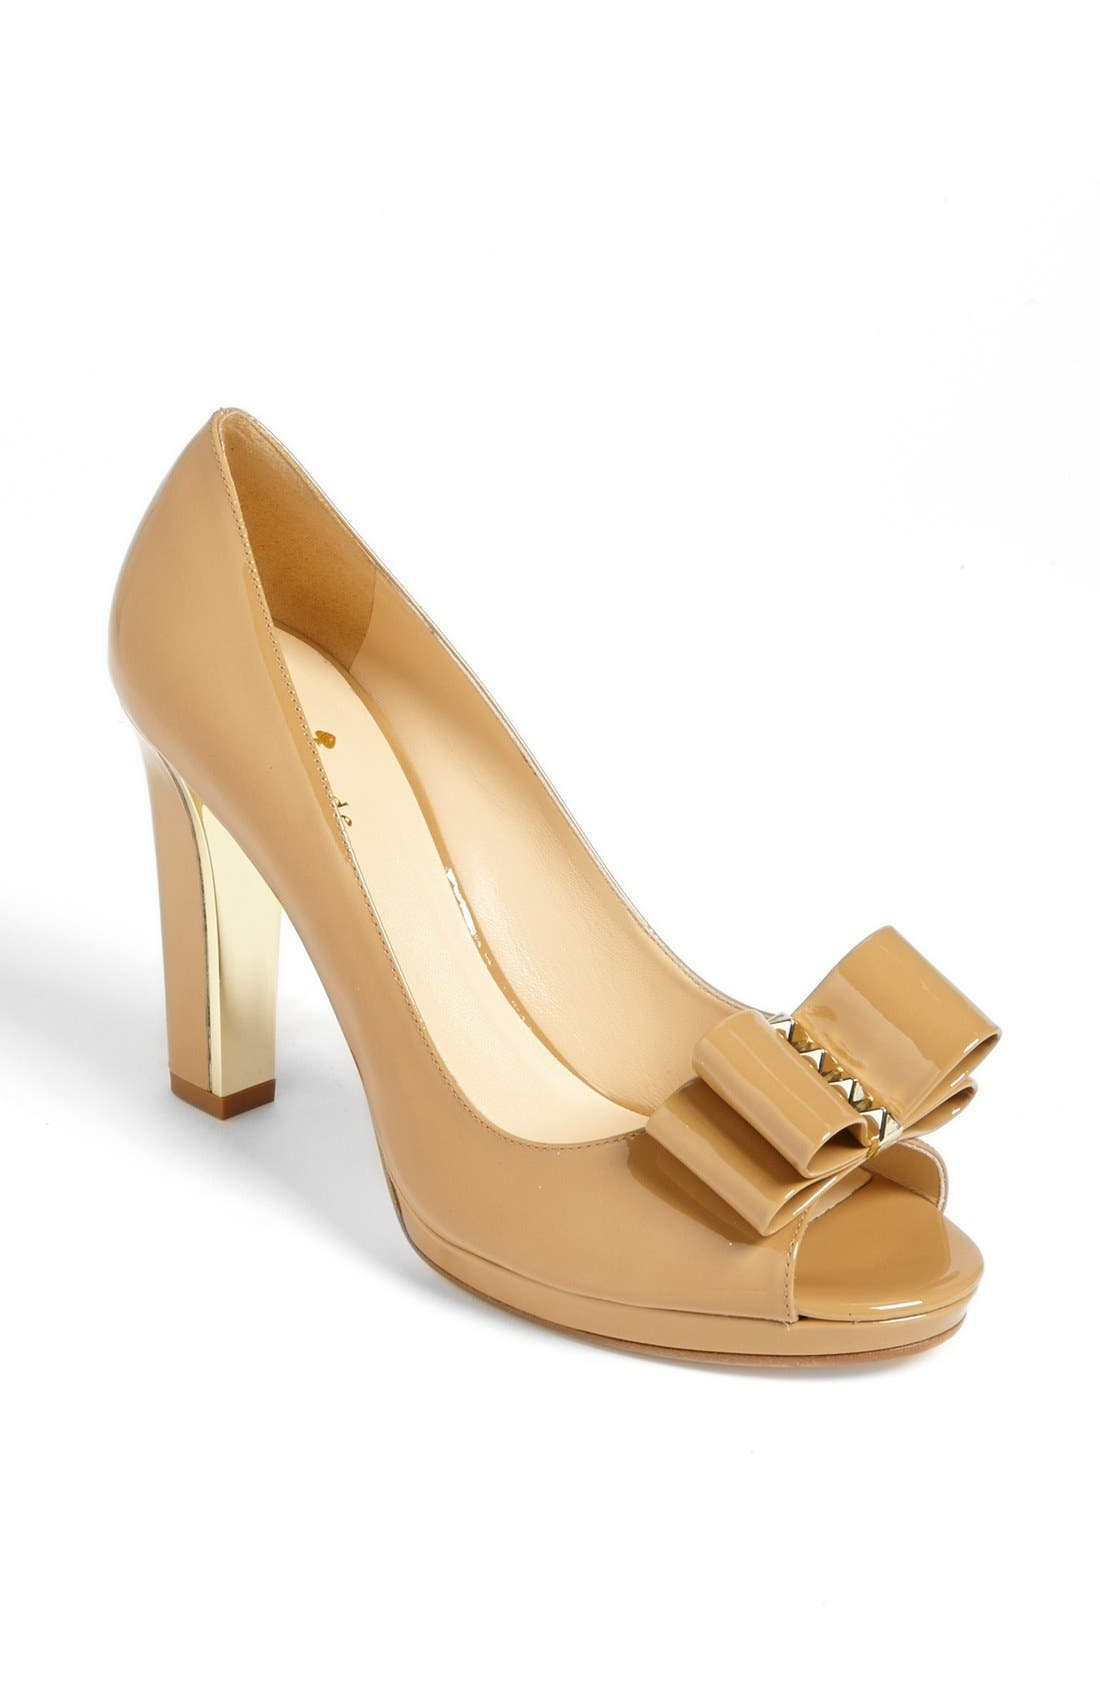 Alternate Image 1 Selected - kate spade new york 'francesca' pump